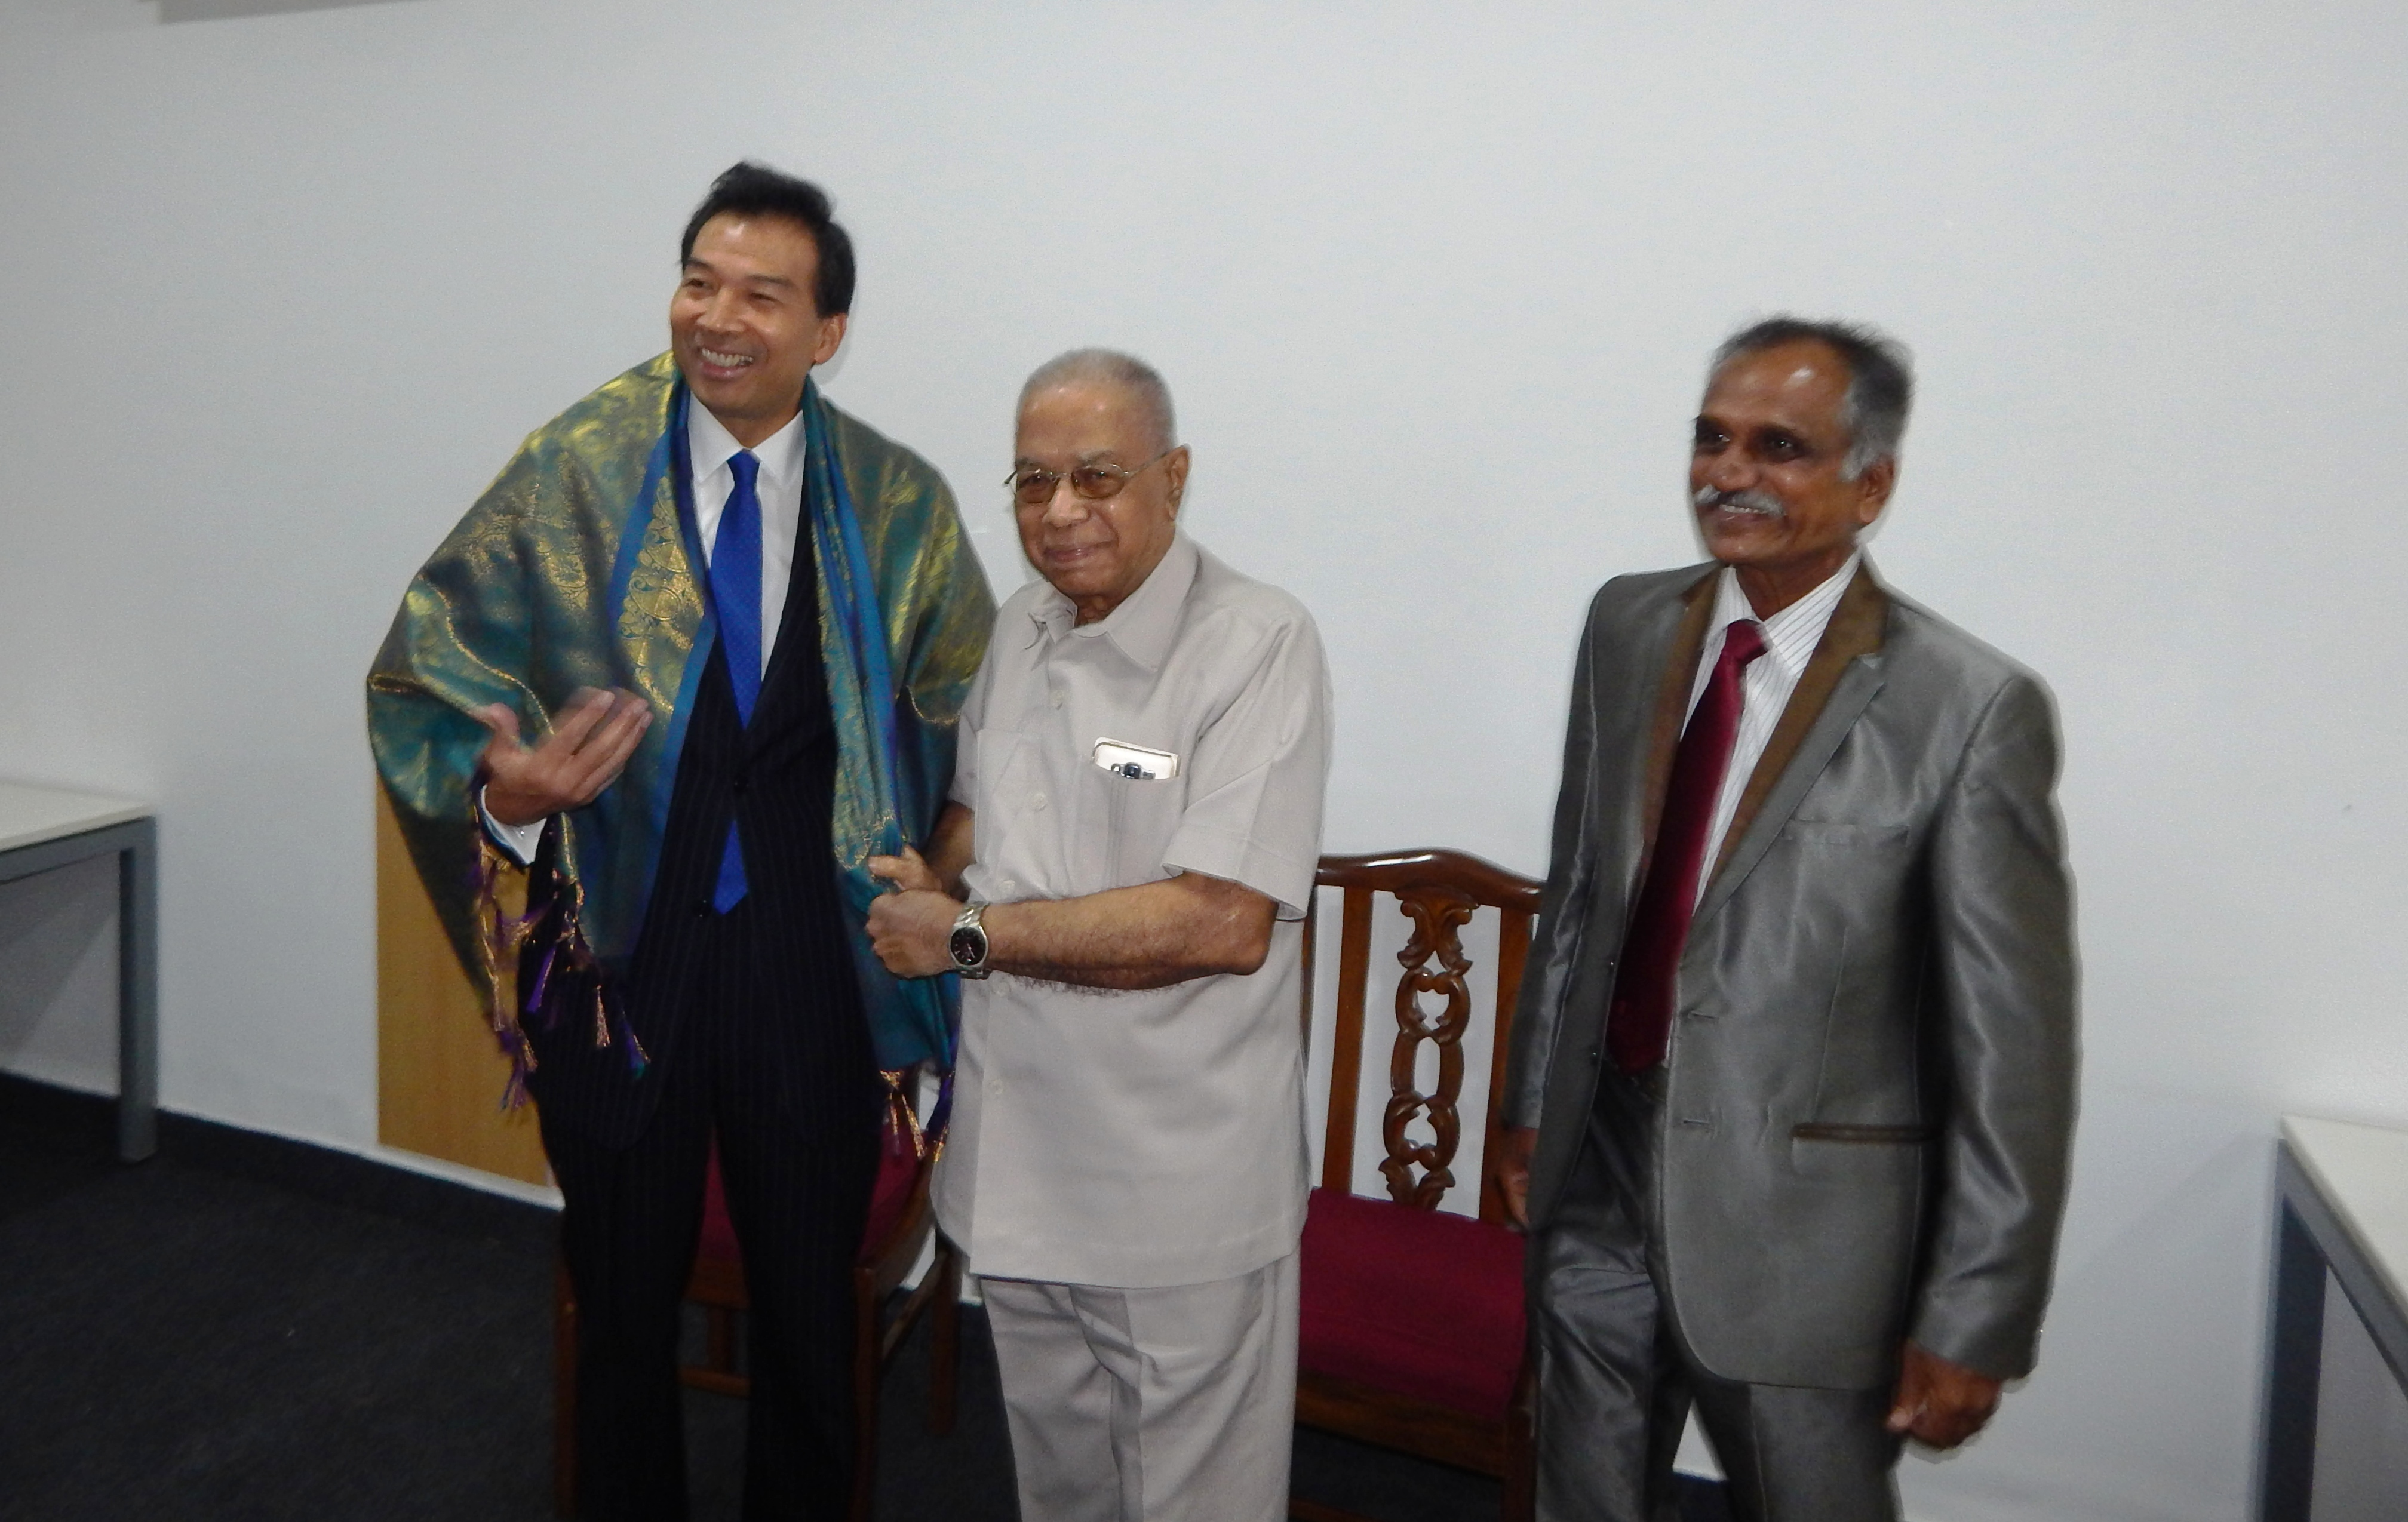 Report of Informal Visit of Chinese Ambassador to India, Luo Zhaohui to C3S